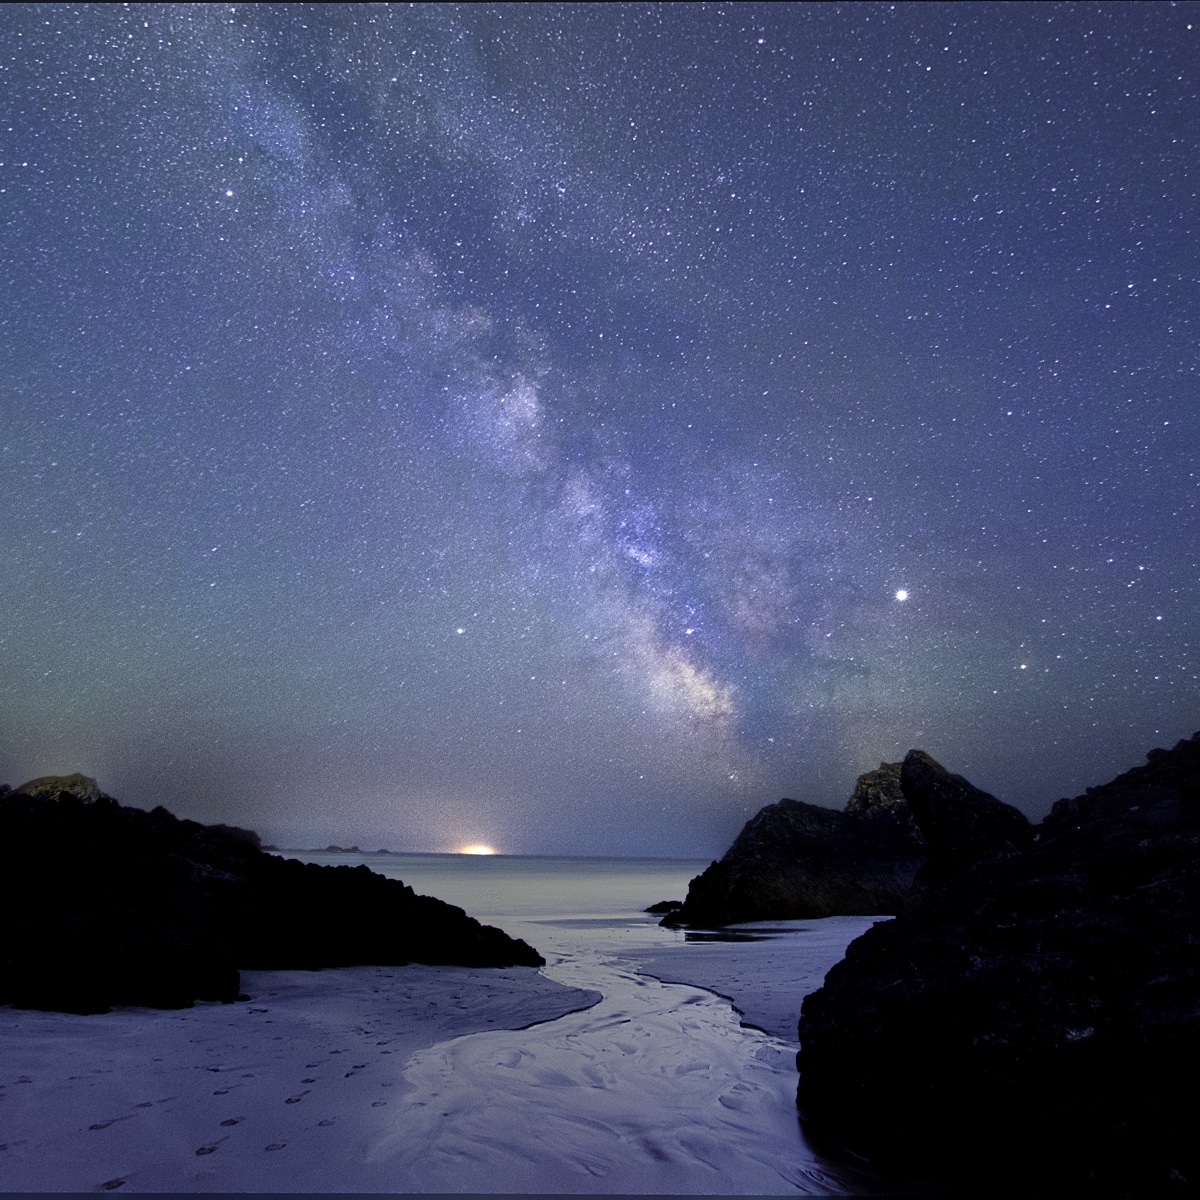 Kynance Cove under the Milky Way